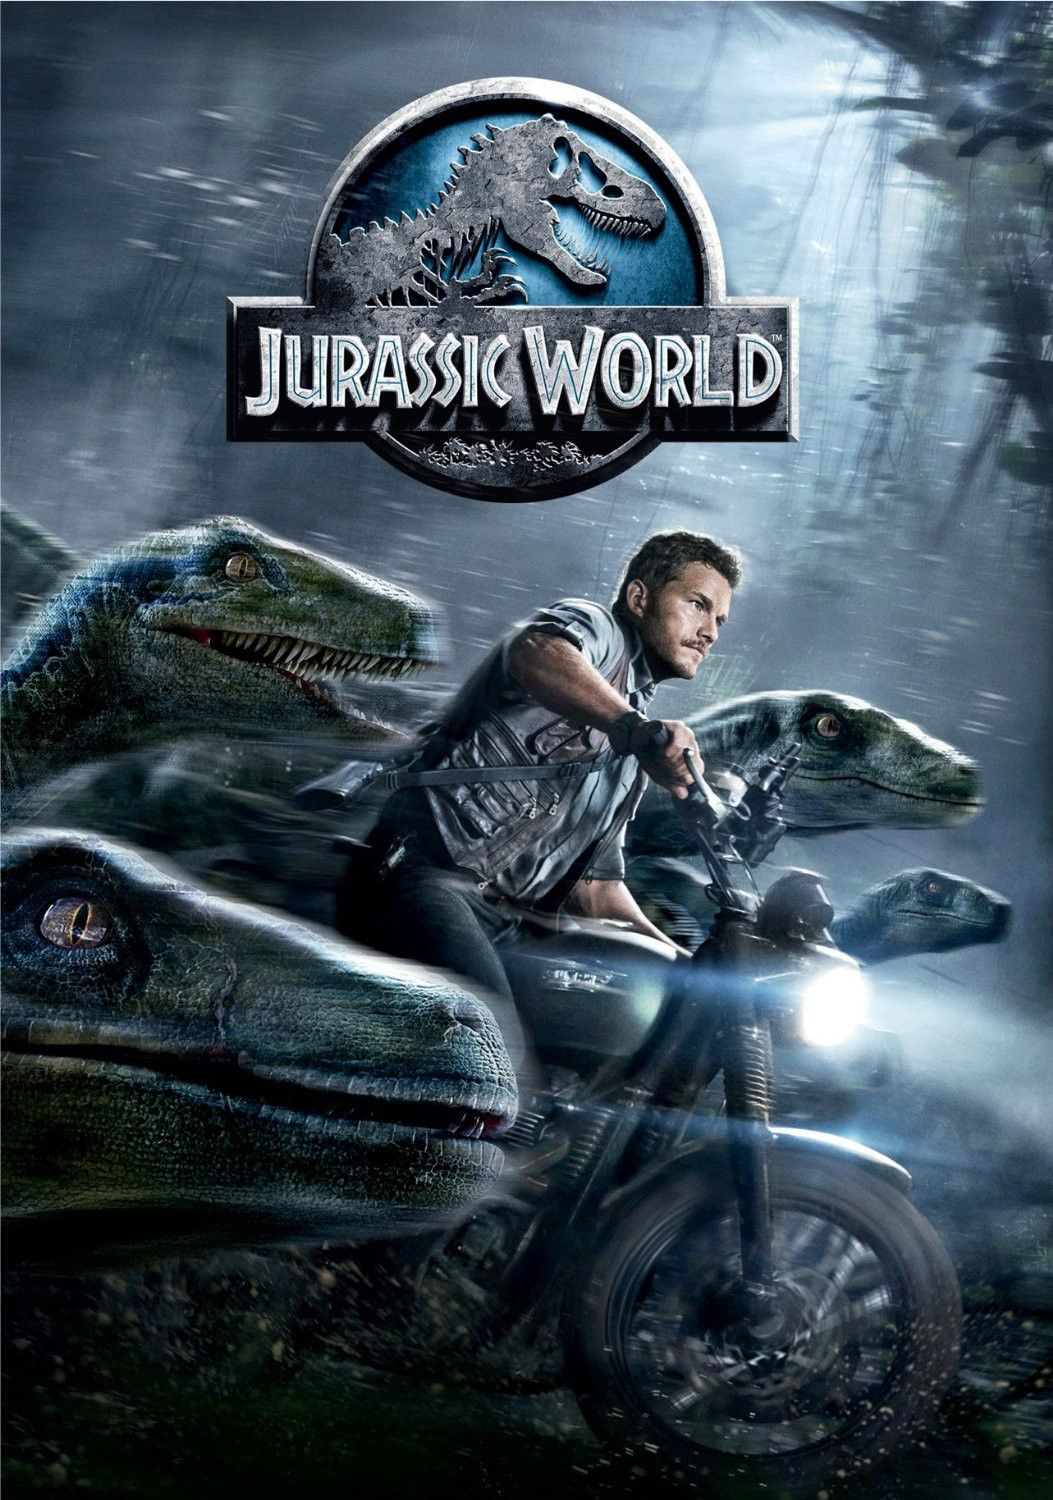 Jurassic World Jurassic world movie, Jurassic world dvd